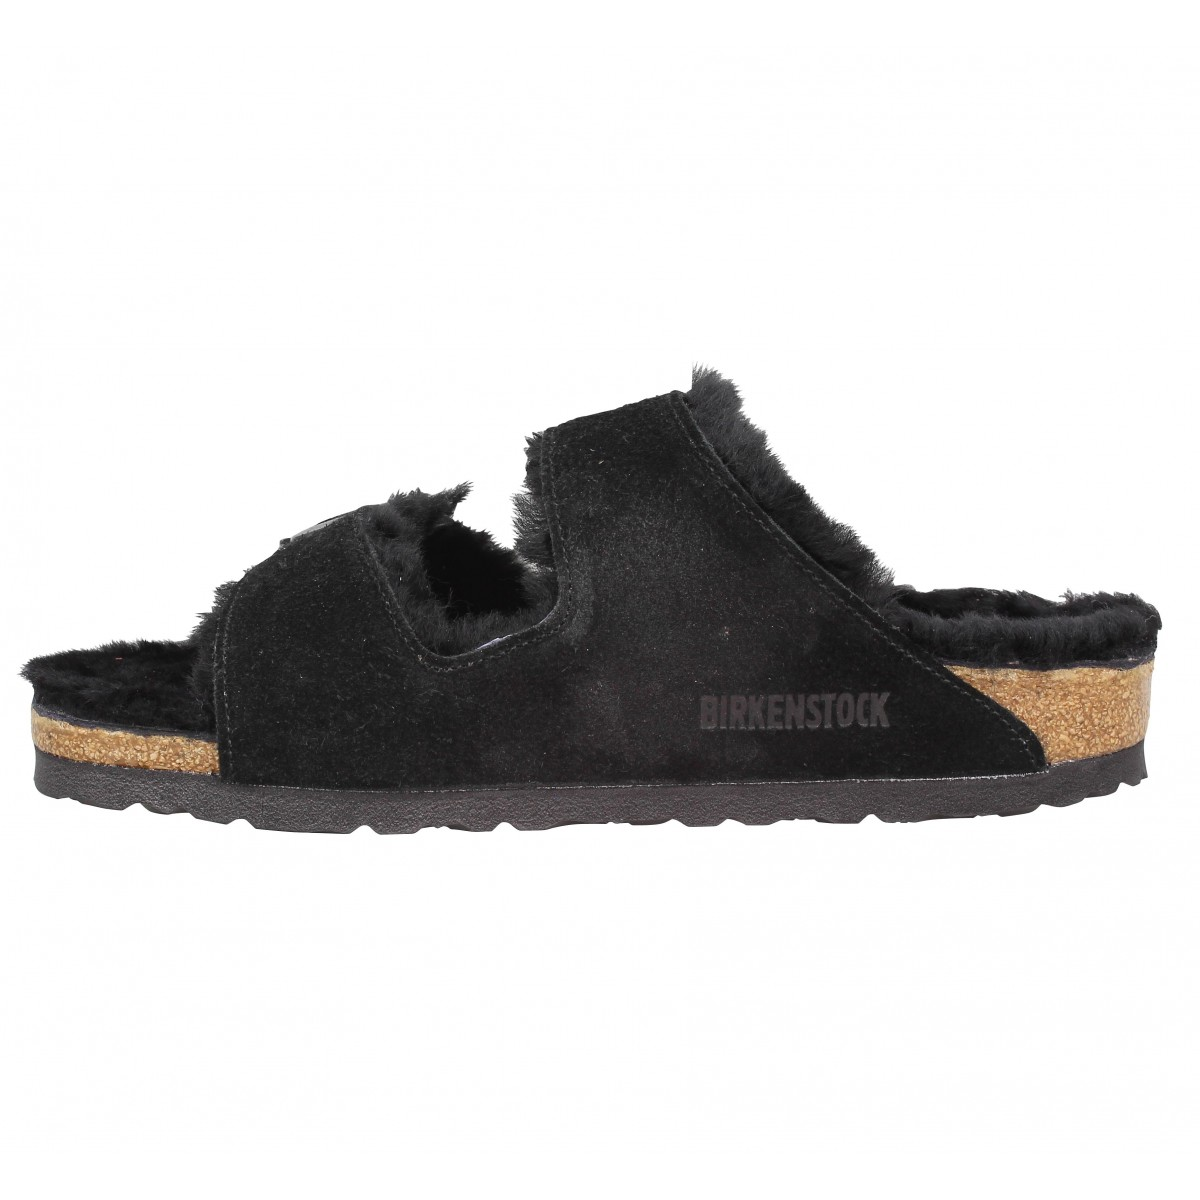 soldes birkenstock arizona fur velours femme noir femme fanny chaussures. Black Bedroom Furniture Sets. Home Design Ideas